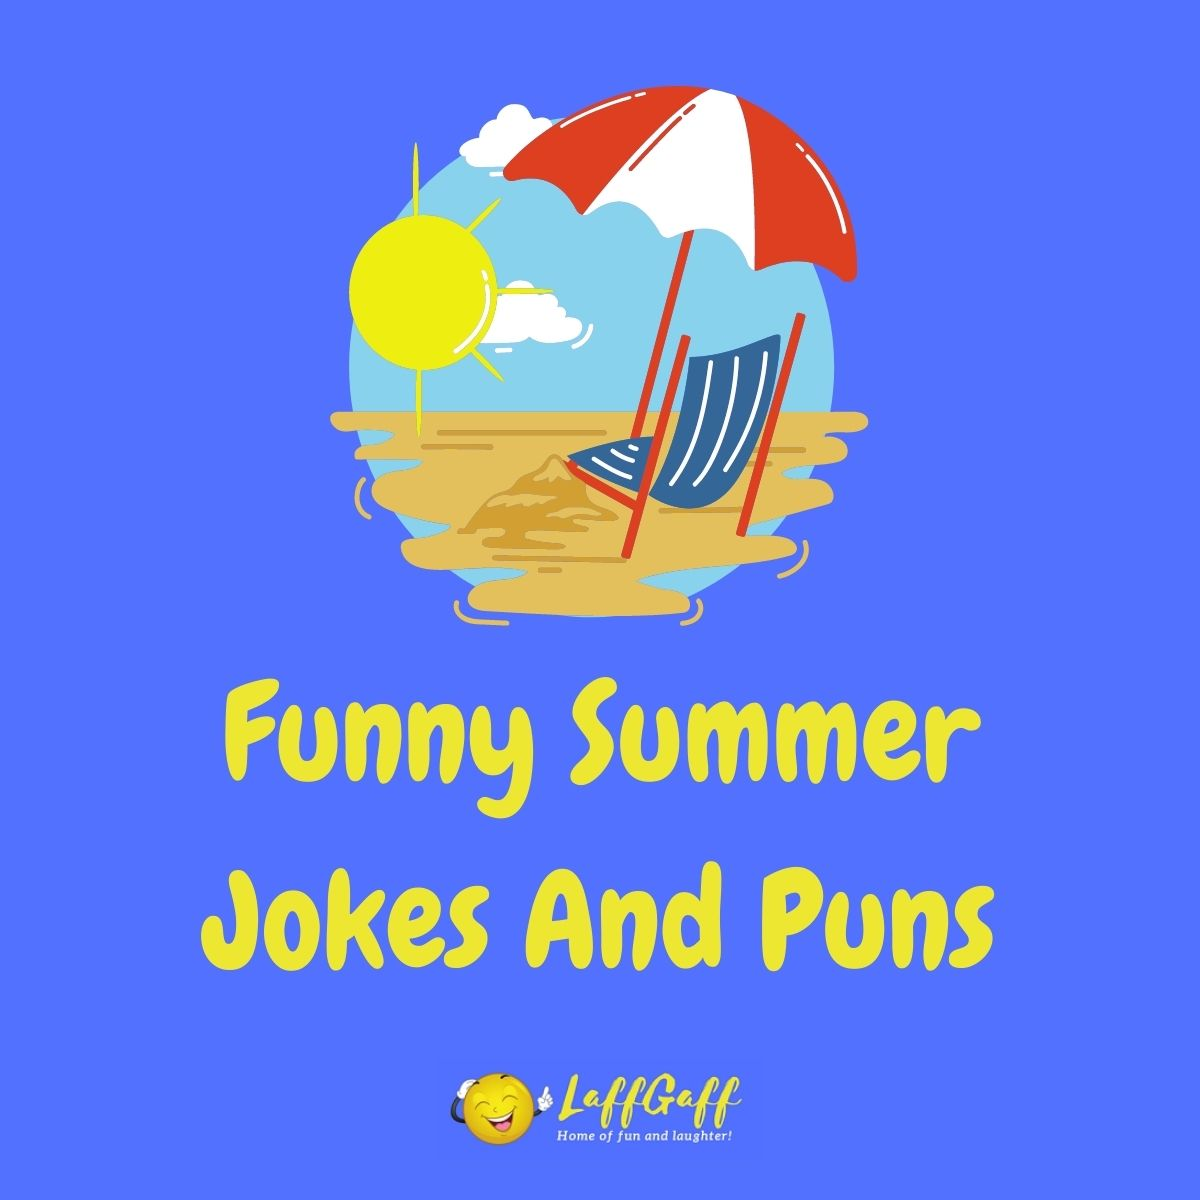 Featured image for a page of funny summer jokes and puns.